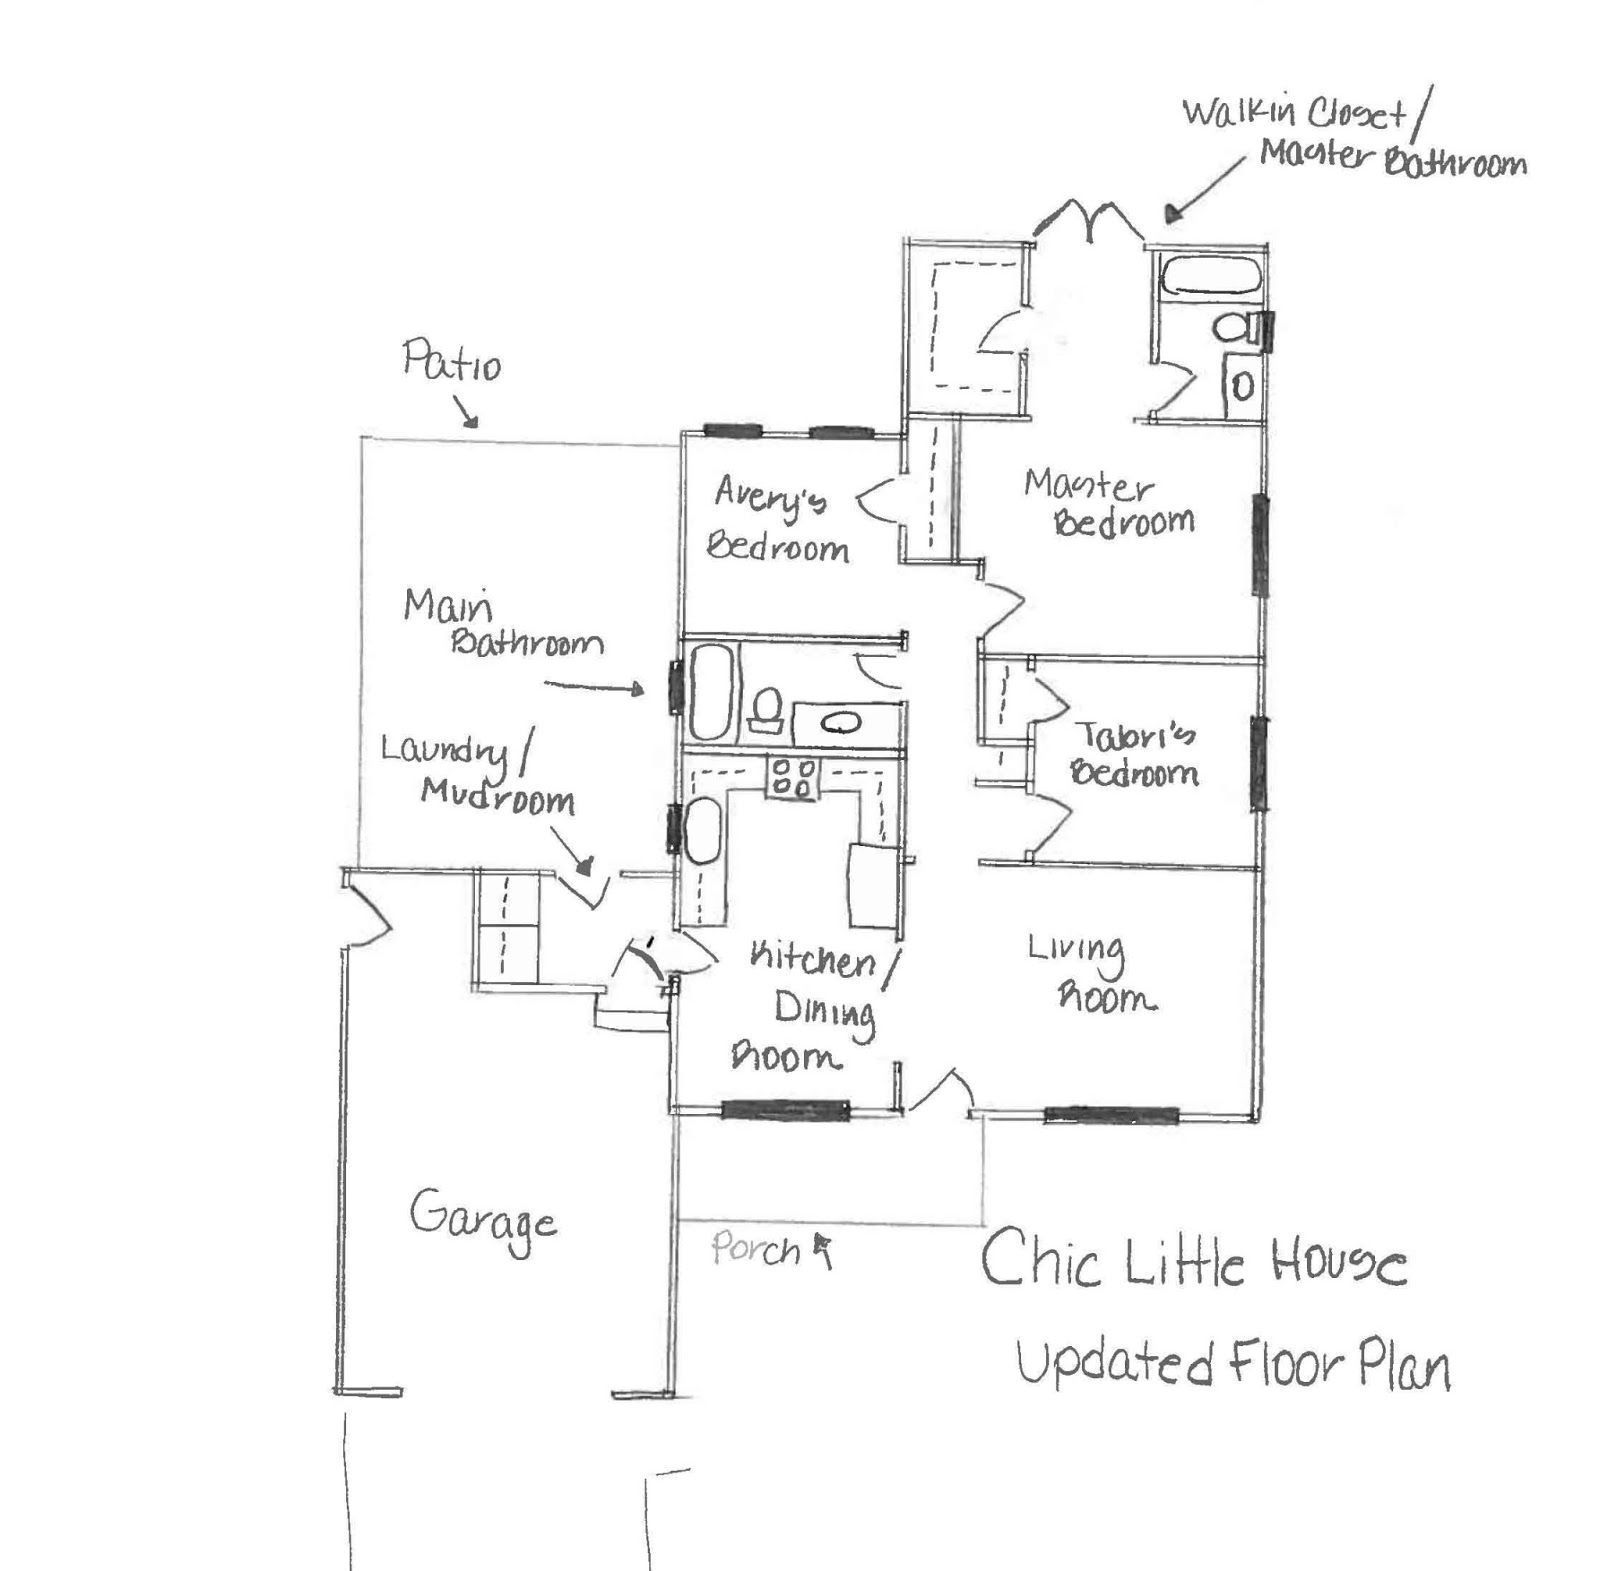 Laundry Room Layout Planner